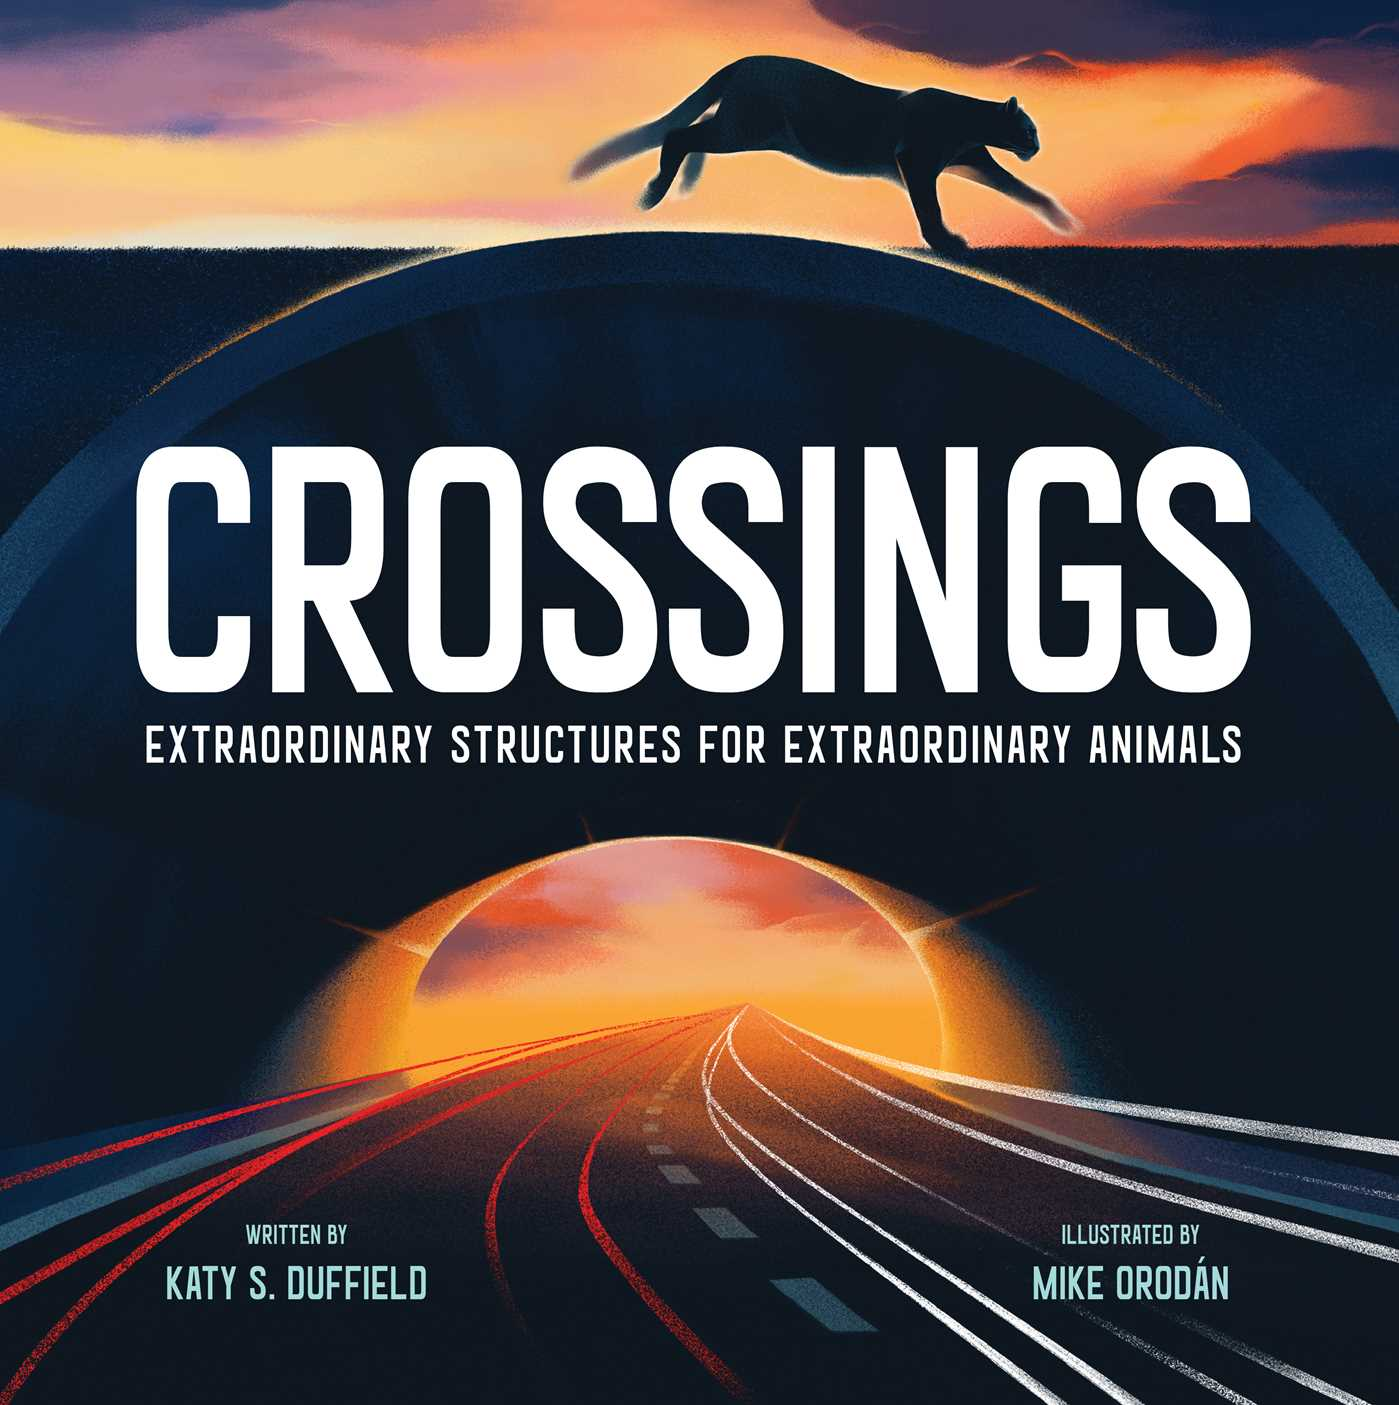 Crossings | Book by Katy S. Duffield, Mike Orodán | Official Publisher Page  | Simon & Schuster